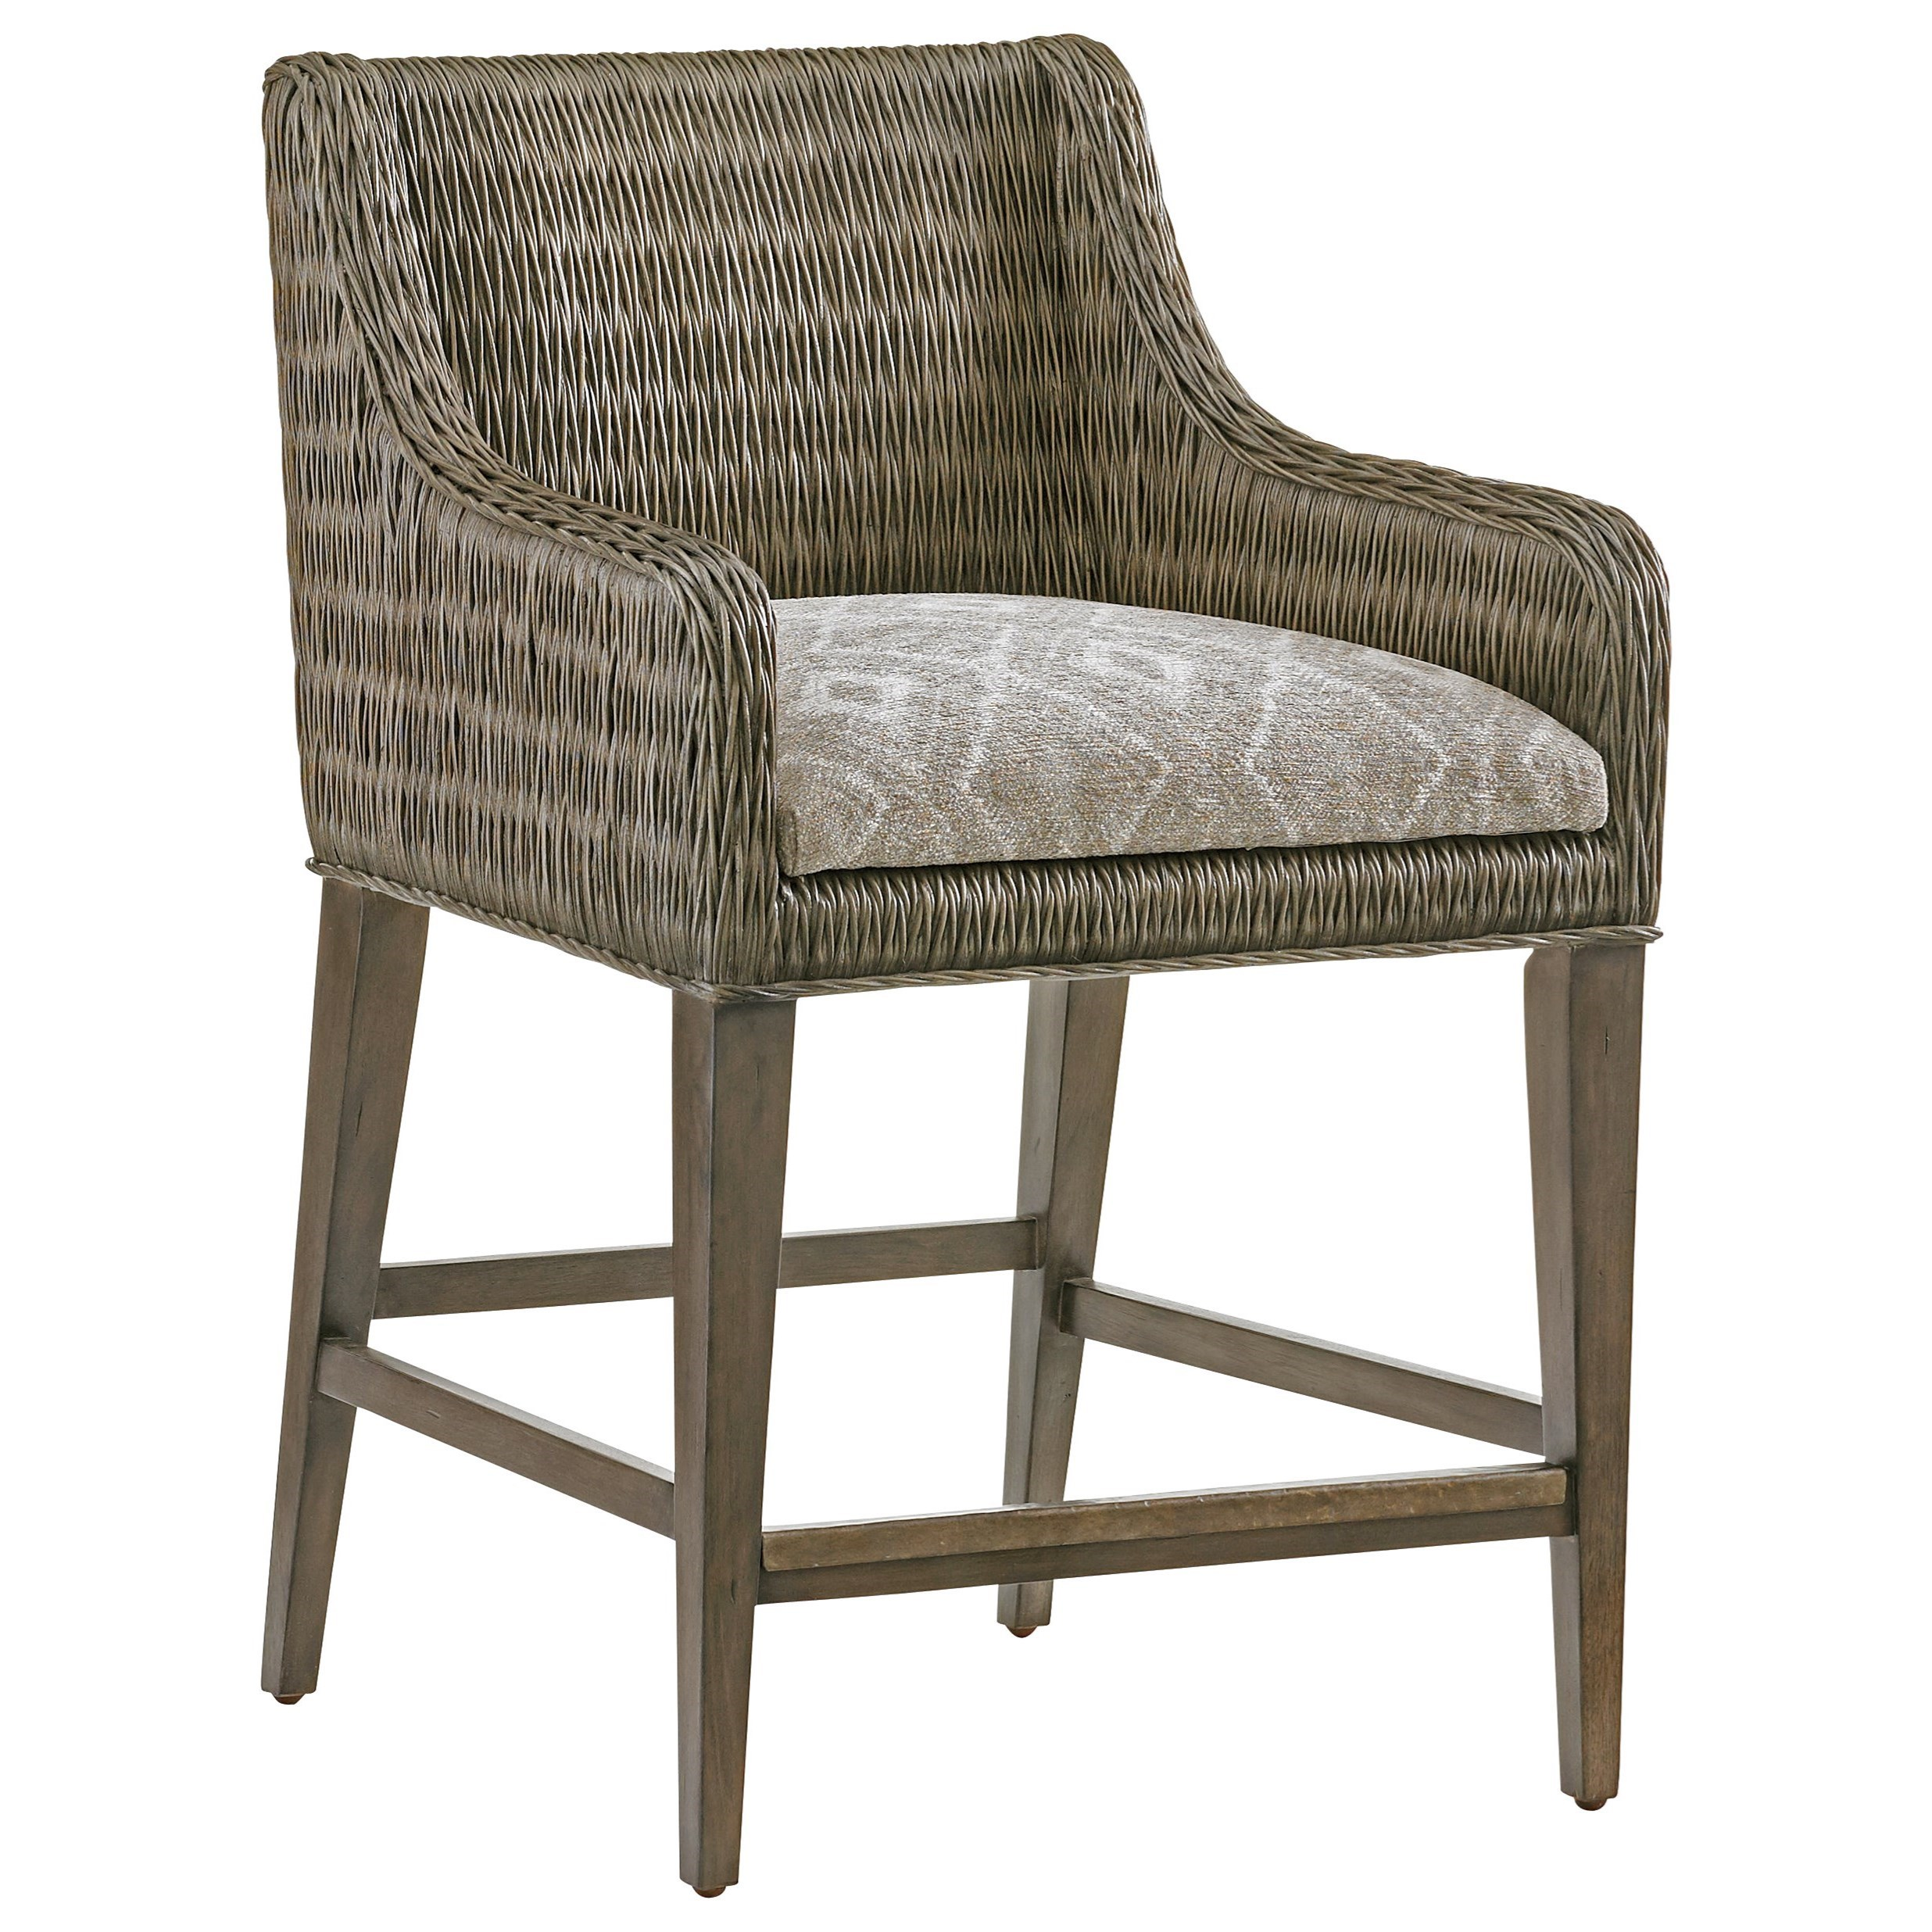 Cypress Point Turner Woven Counter Stool Custom by Tommy Bahama Home at Baer's Furniture